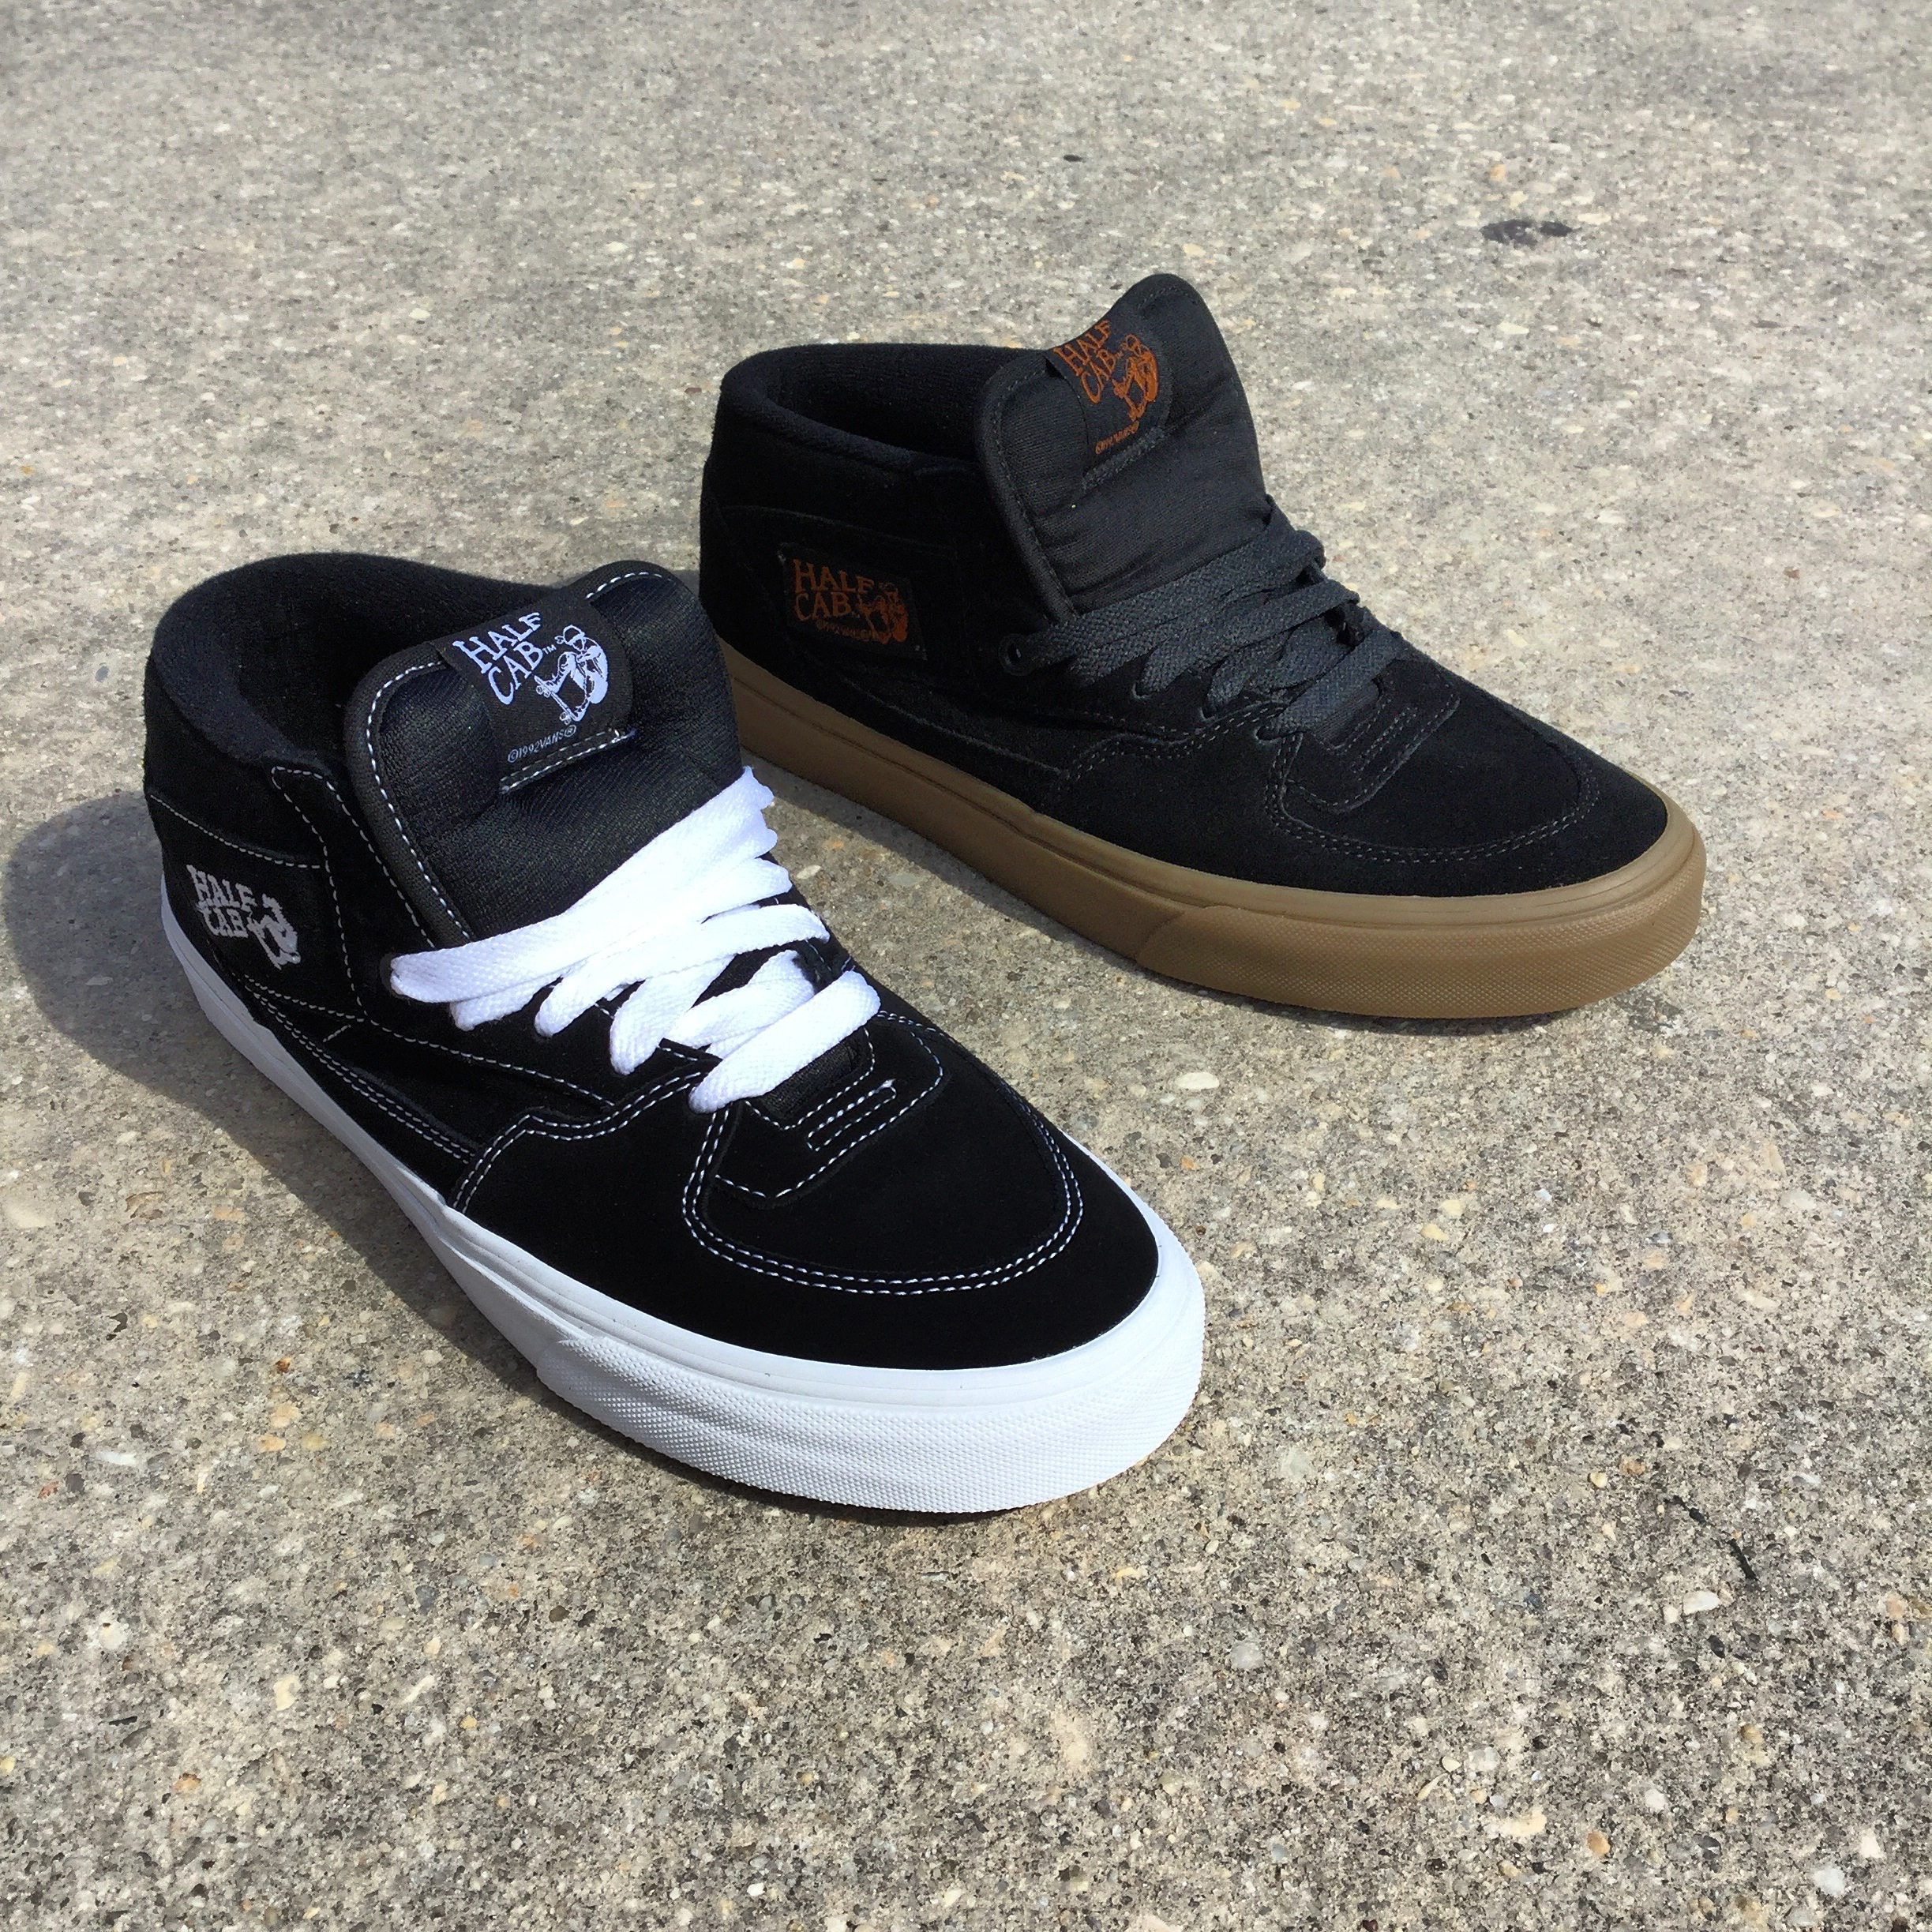 89a439031dd863 New Classic Color Way s In The Vans Half Cab Just Came In At Our Parkville  Location.